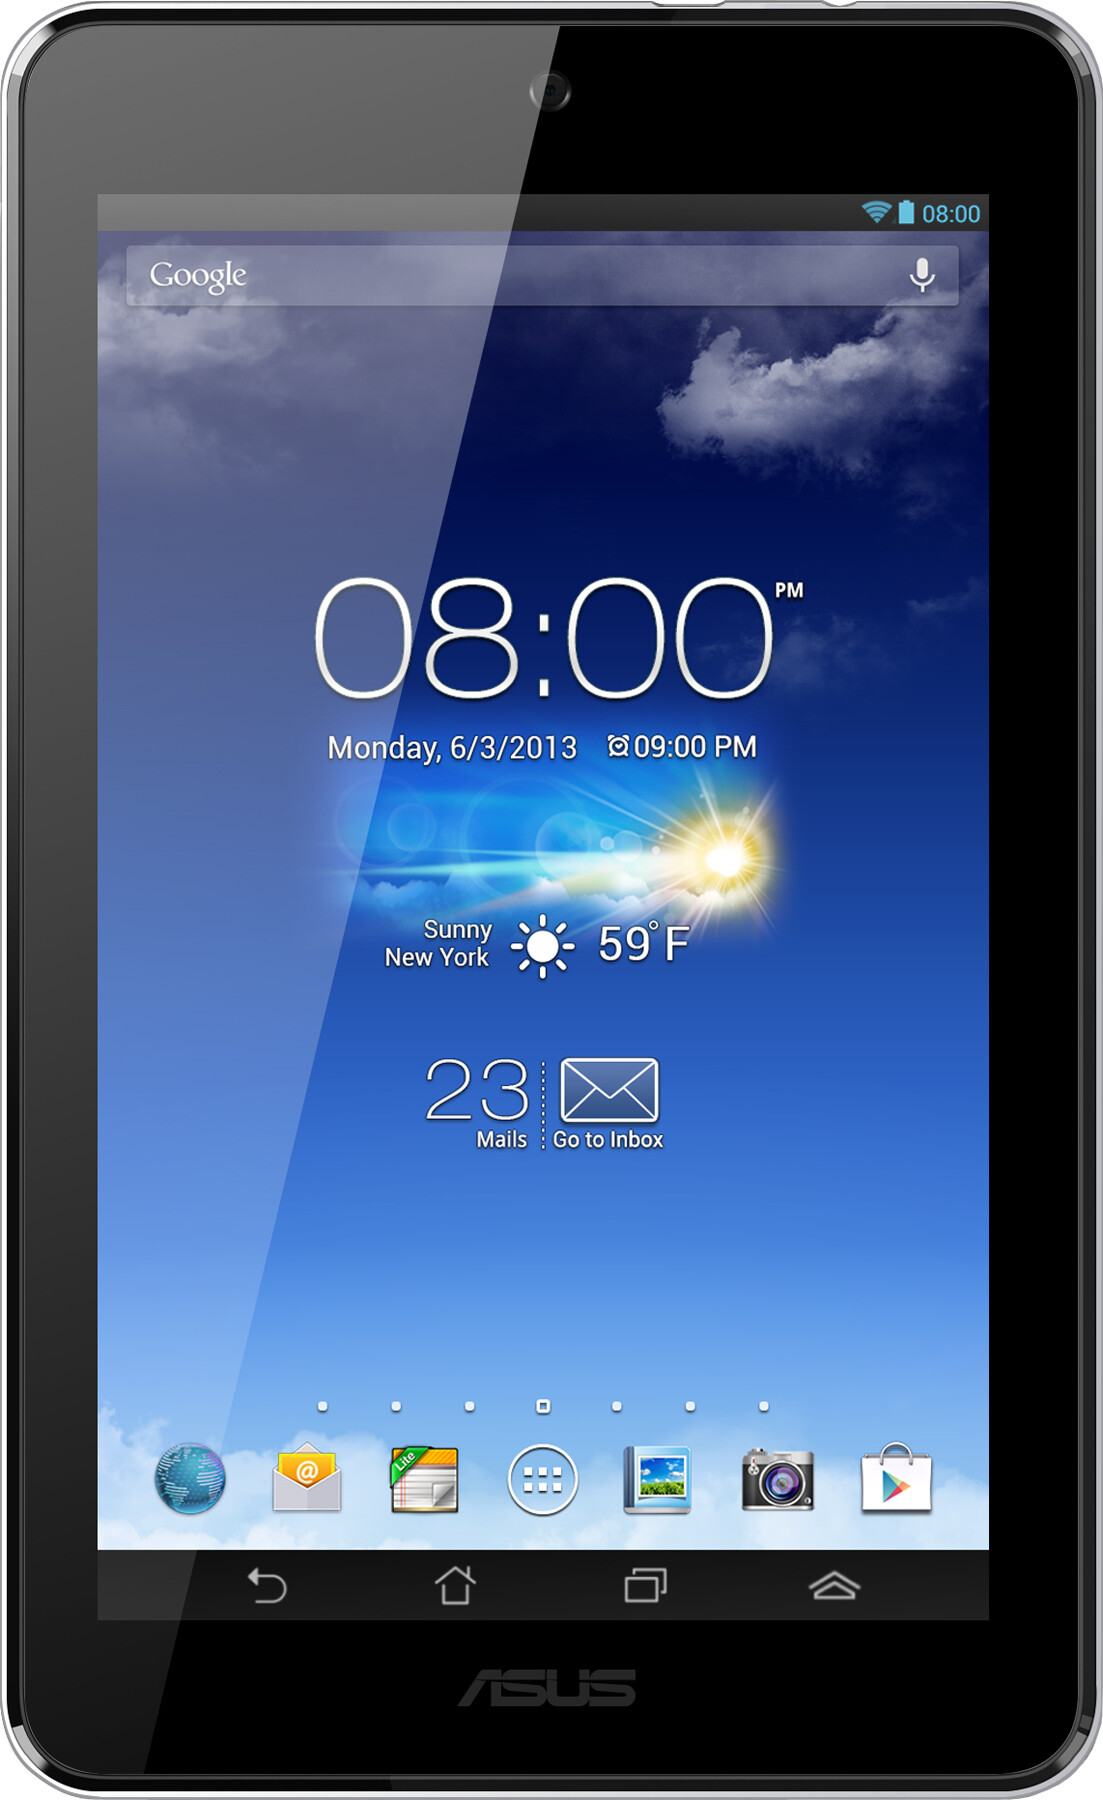 Asus MeMO Pad HD 7 Size - Real life visualization and comparison